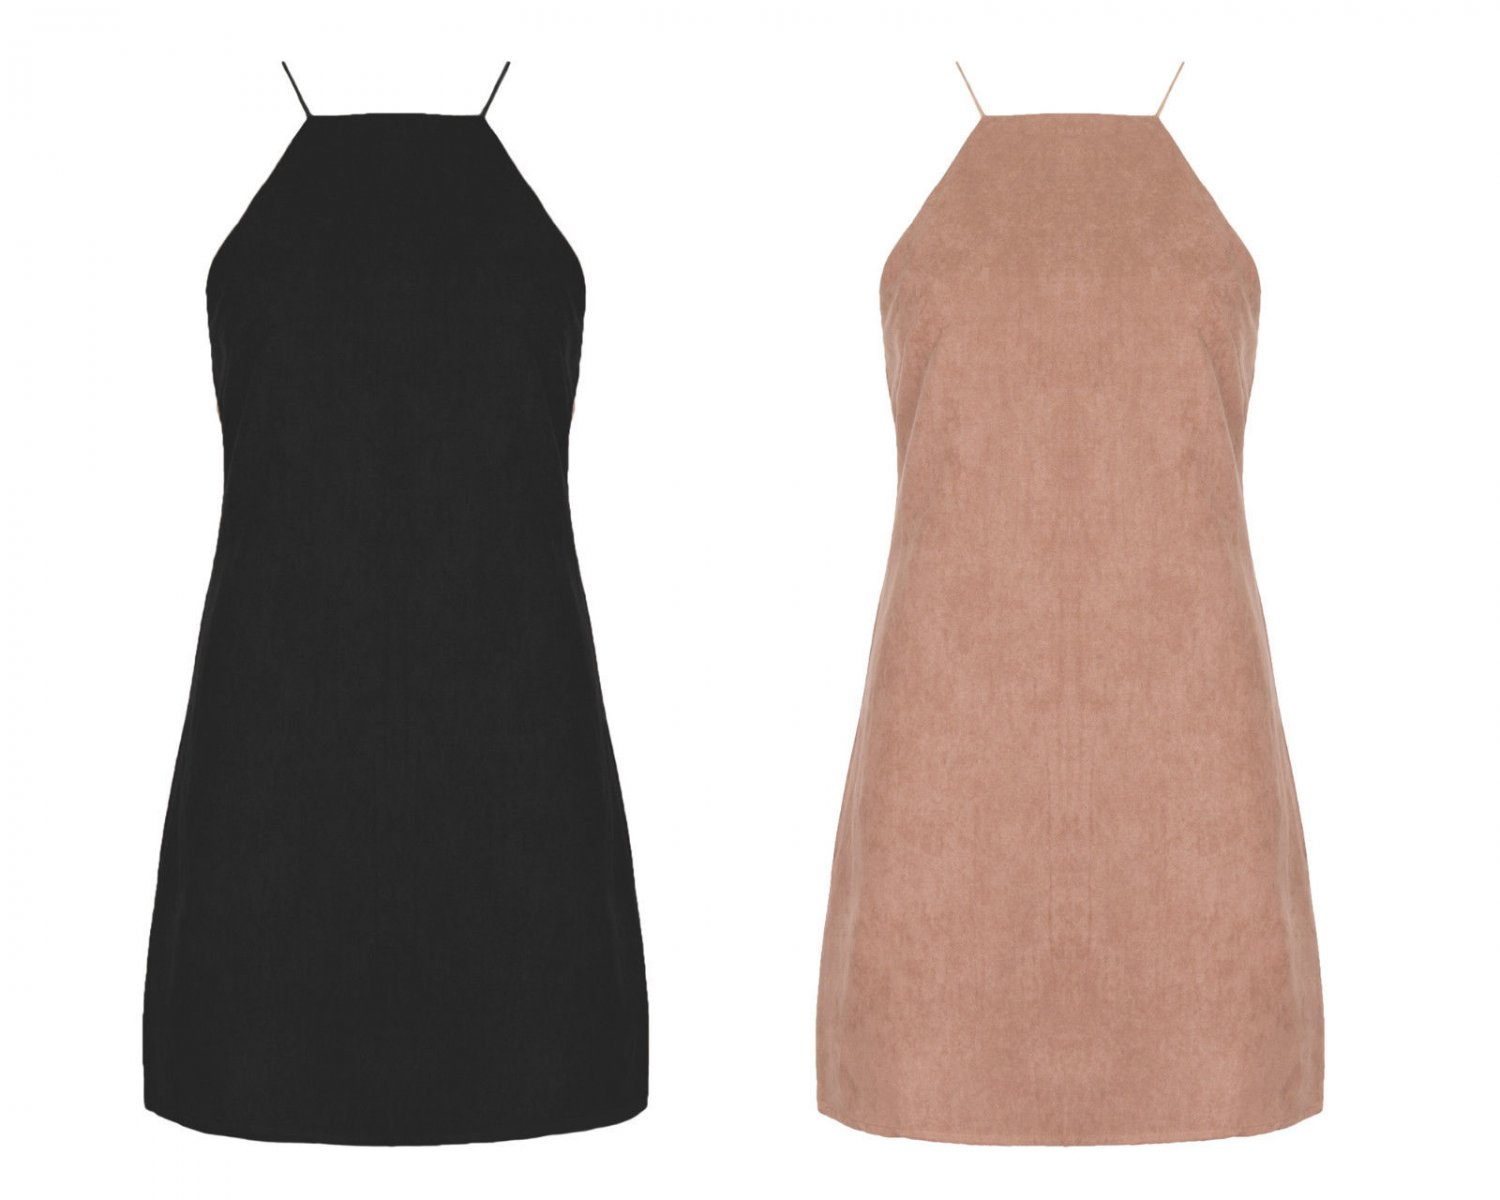 New Women Suede Mini Sexy Dress Rouleaux Straps Tunic Pinafore A Line UK Size 6 Black